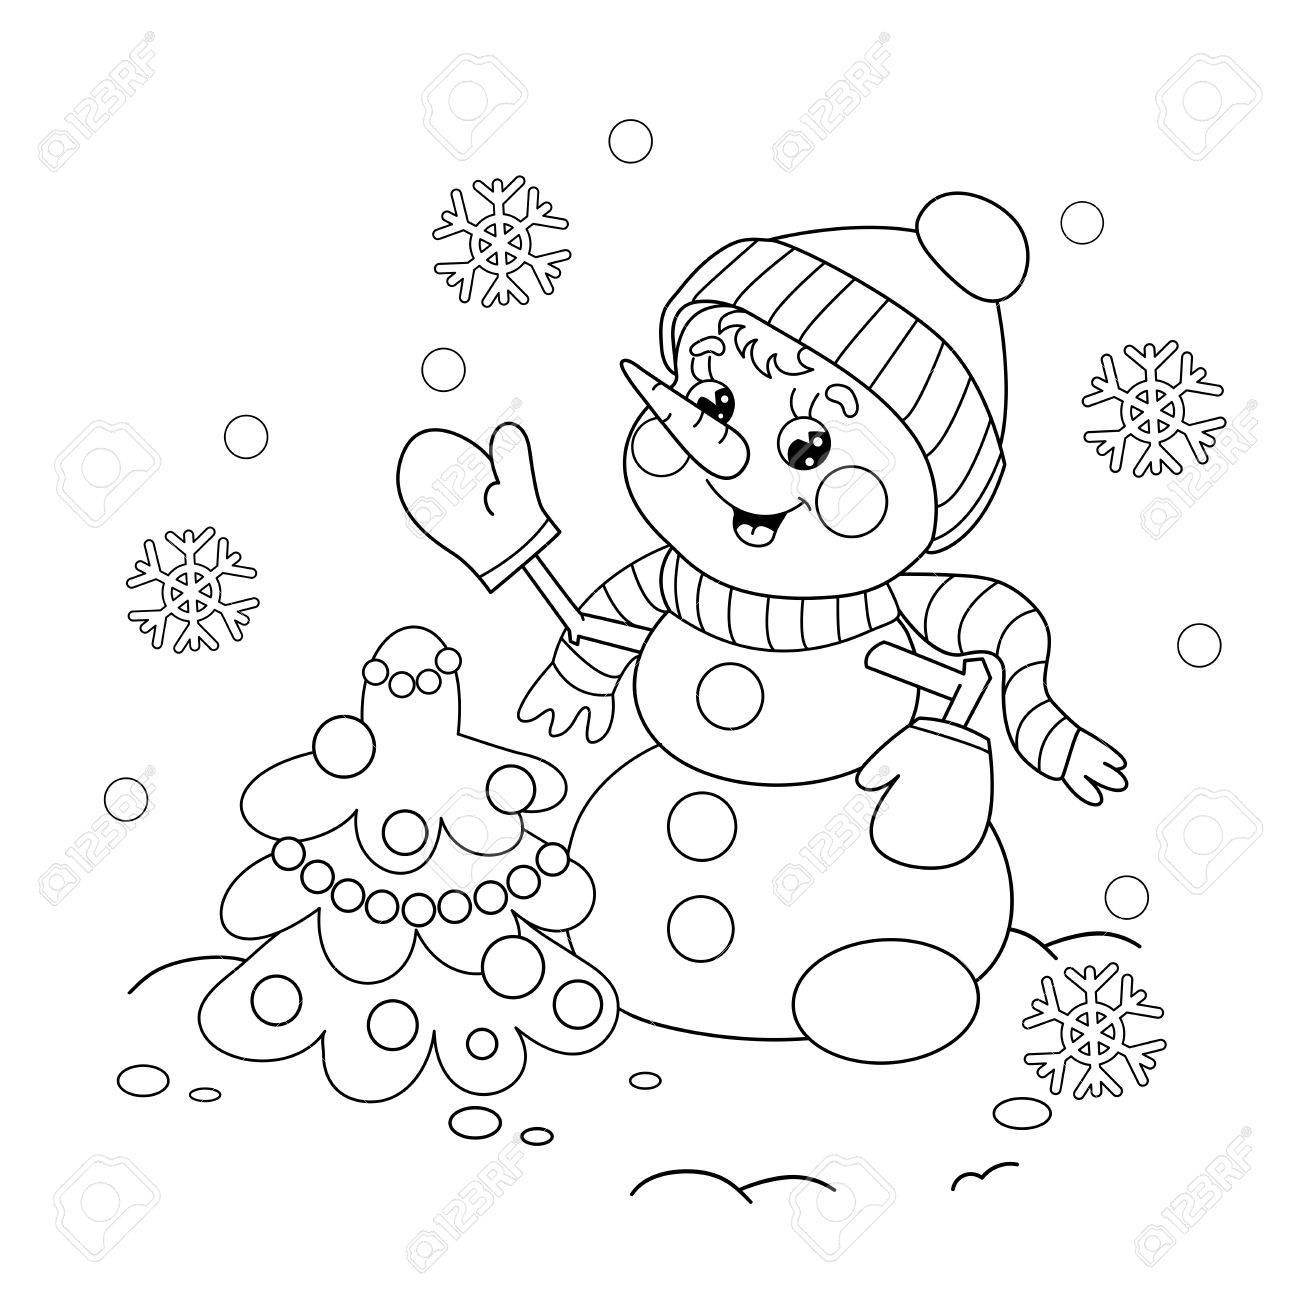 Coloring Page Outline Of Cartoon Snowman With Christmas Tree ...